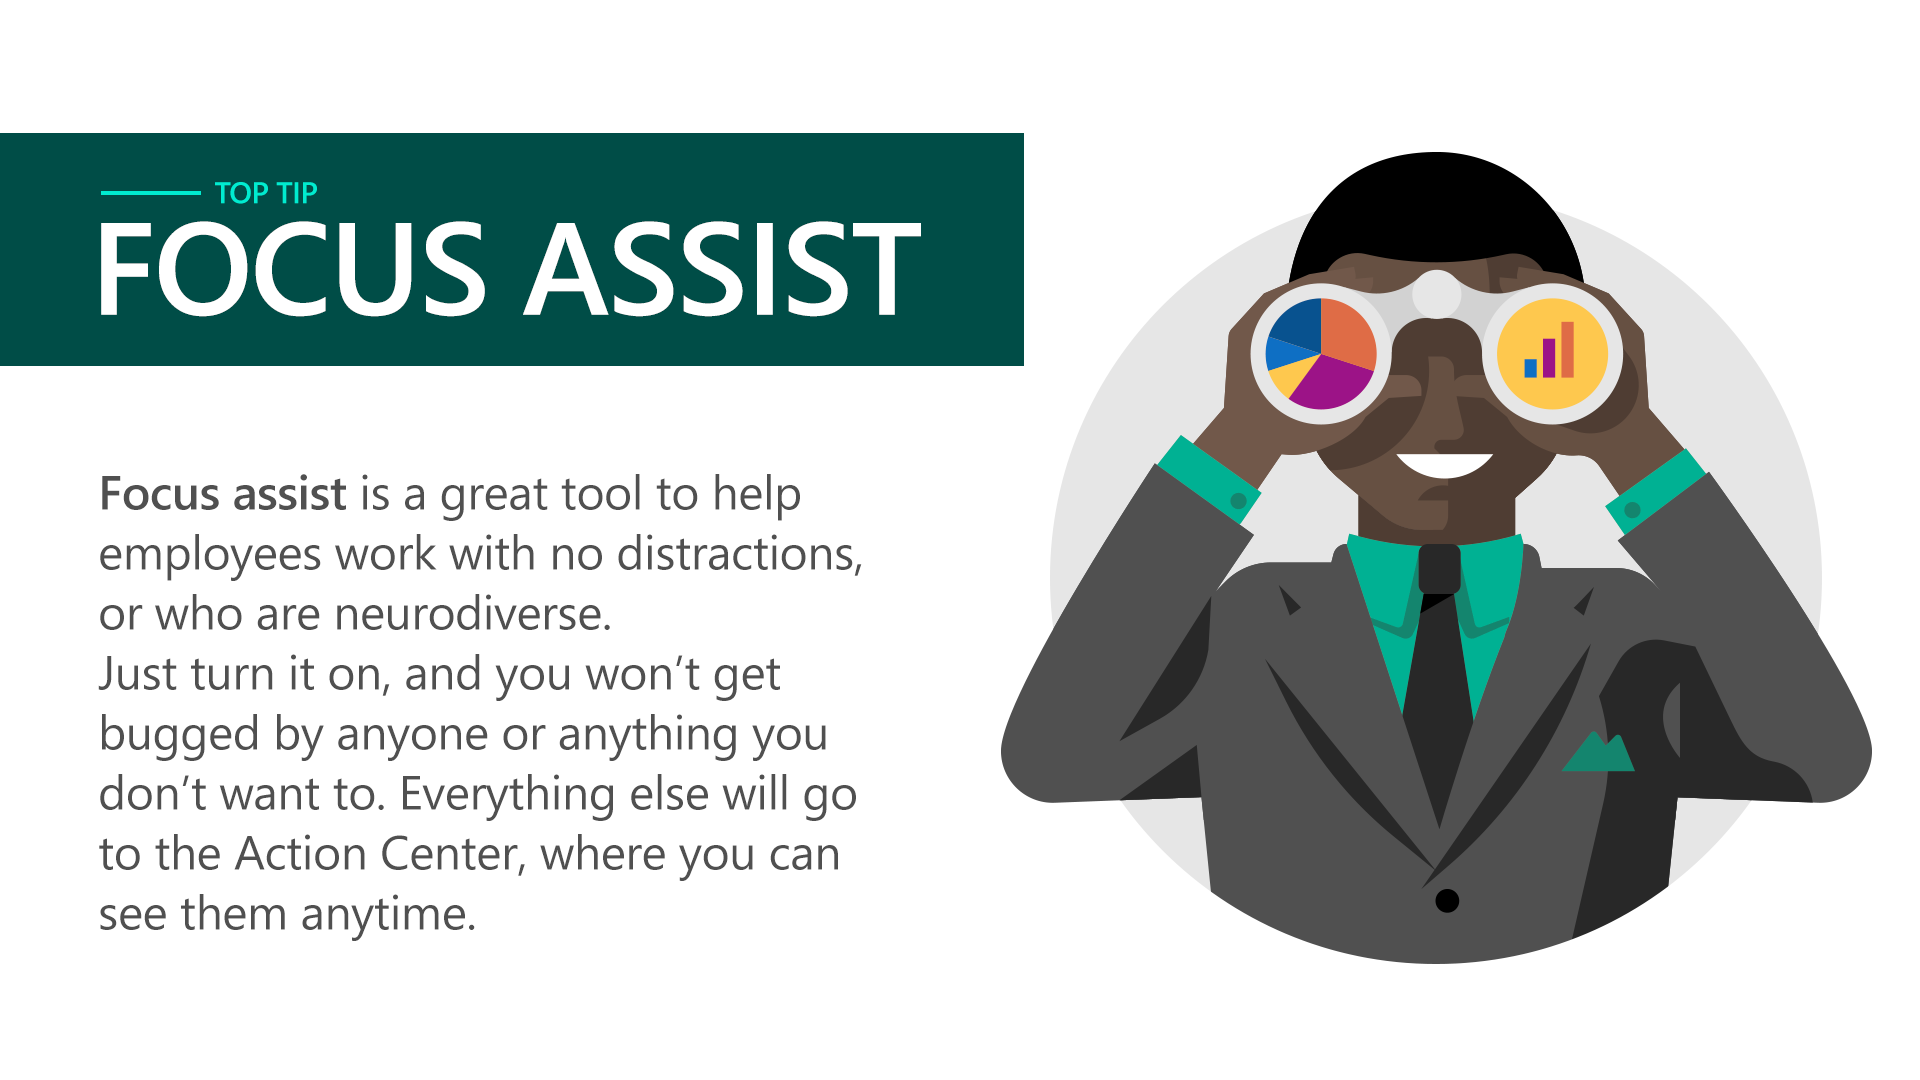 Focus assist is great tool to help employees work with no distractions, or who are neurodiverse. Just turn it on, and you won't get bugged by anyone or anything you don't want to. Everything else will go to the Action Center, where you can see them anytime.